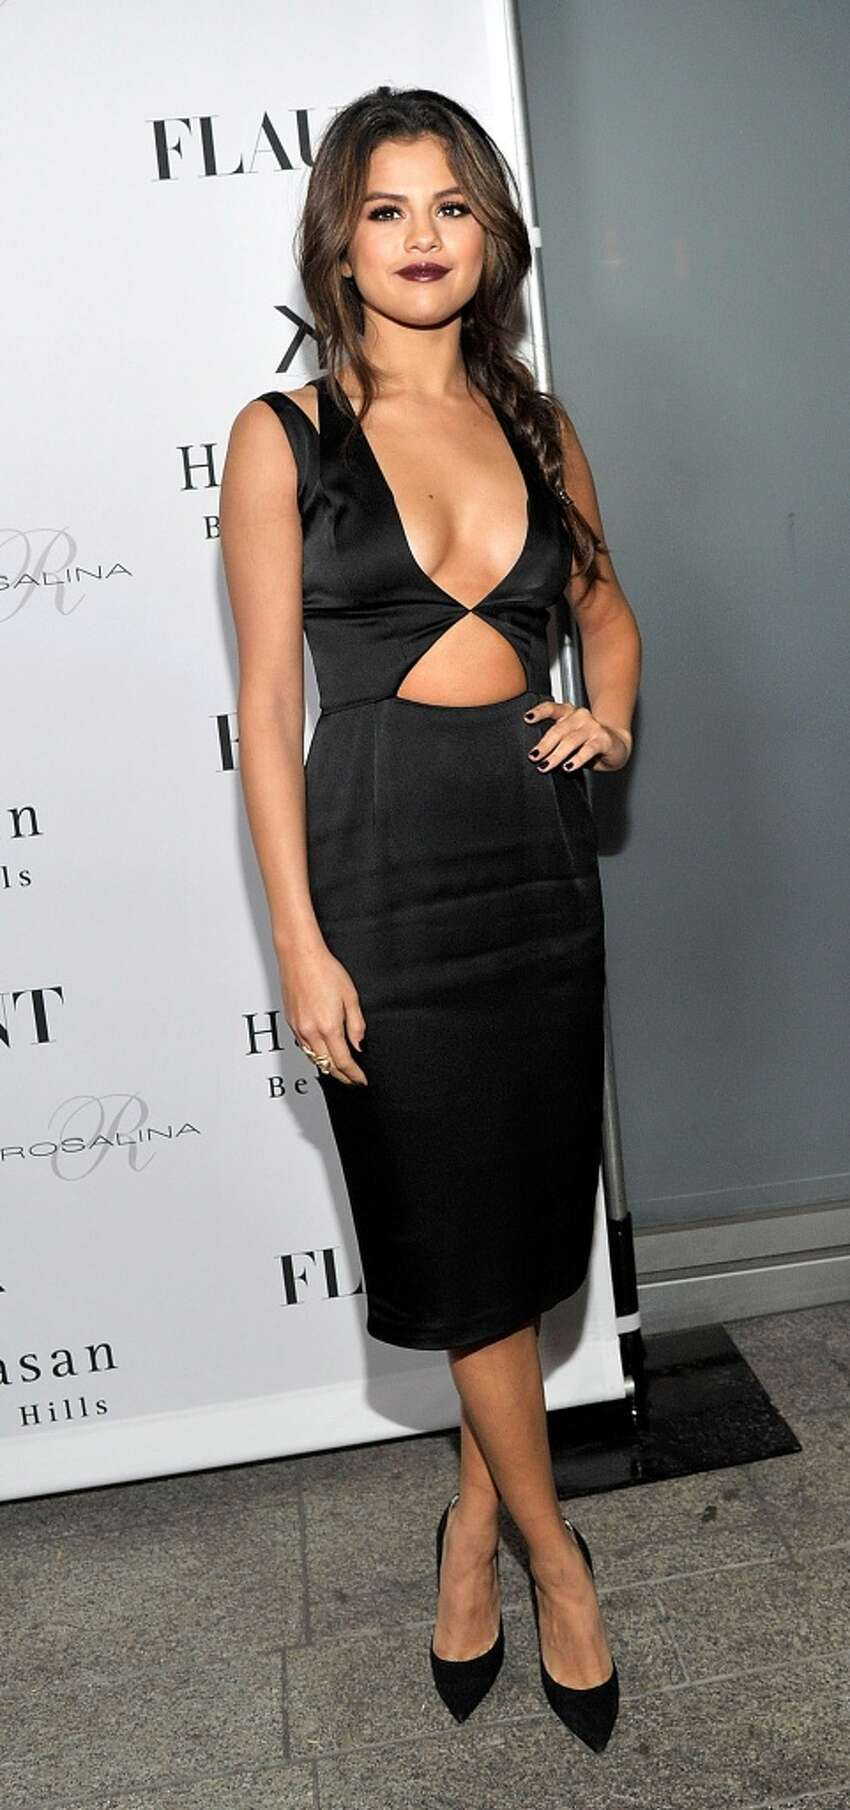 Actress Selena Gomez attends the Flaunt Magazine En Garde! Issue launch party with Selena Gomez and Amanda De Cadenet at Hakkasan Restaurant Beverly Hills on November 7, 2013 in Beverly Hills, California.